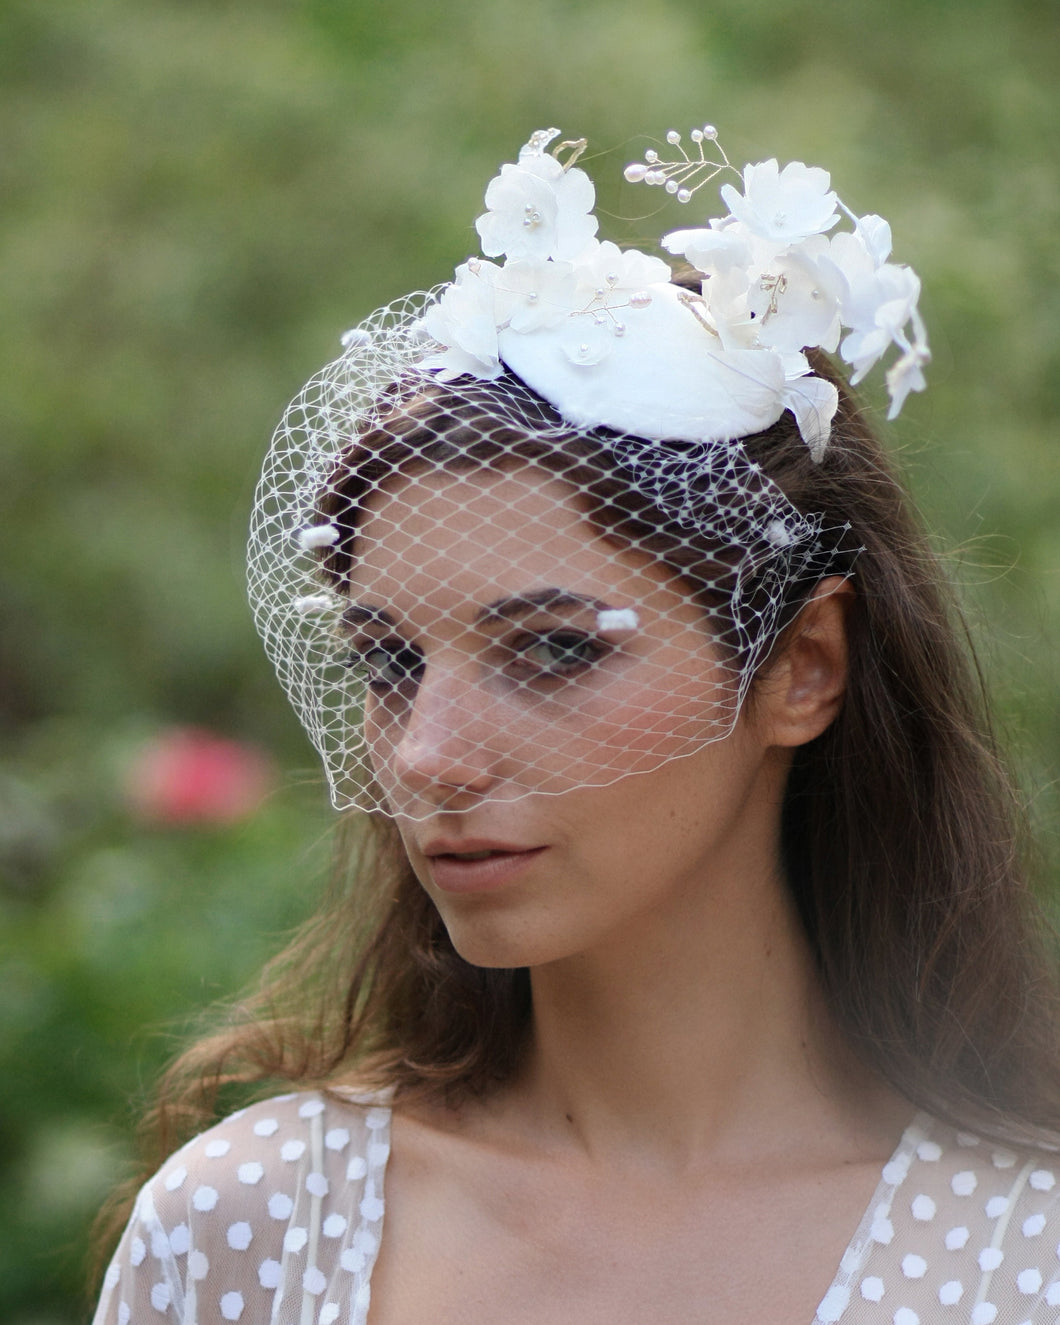 Statement bridal flower birdcage veil hat with silk ivory flowers and dotted veil